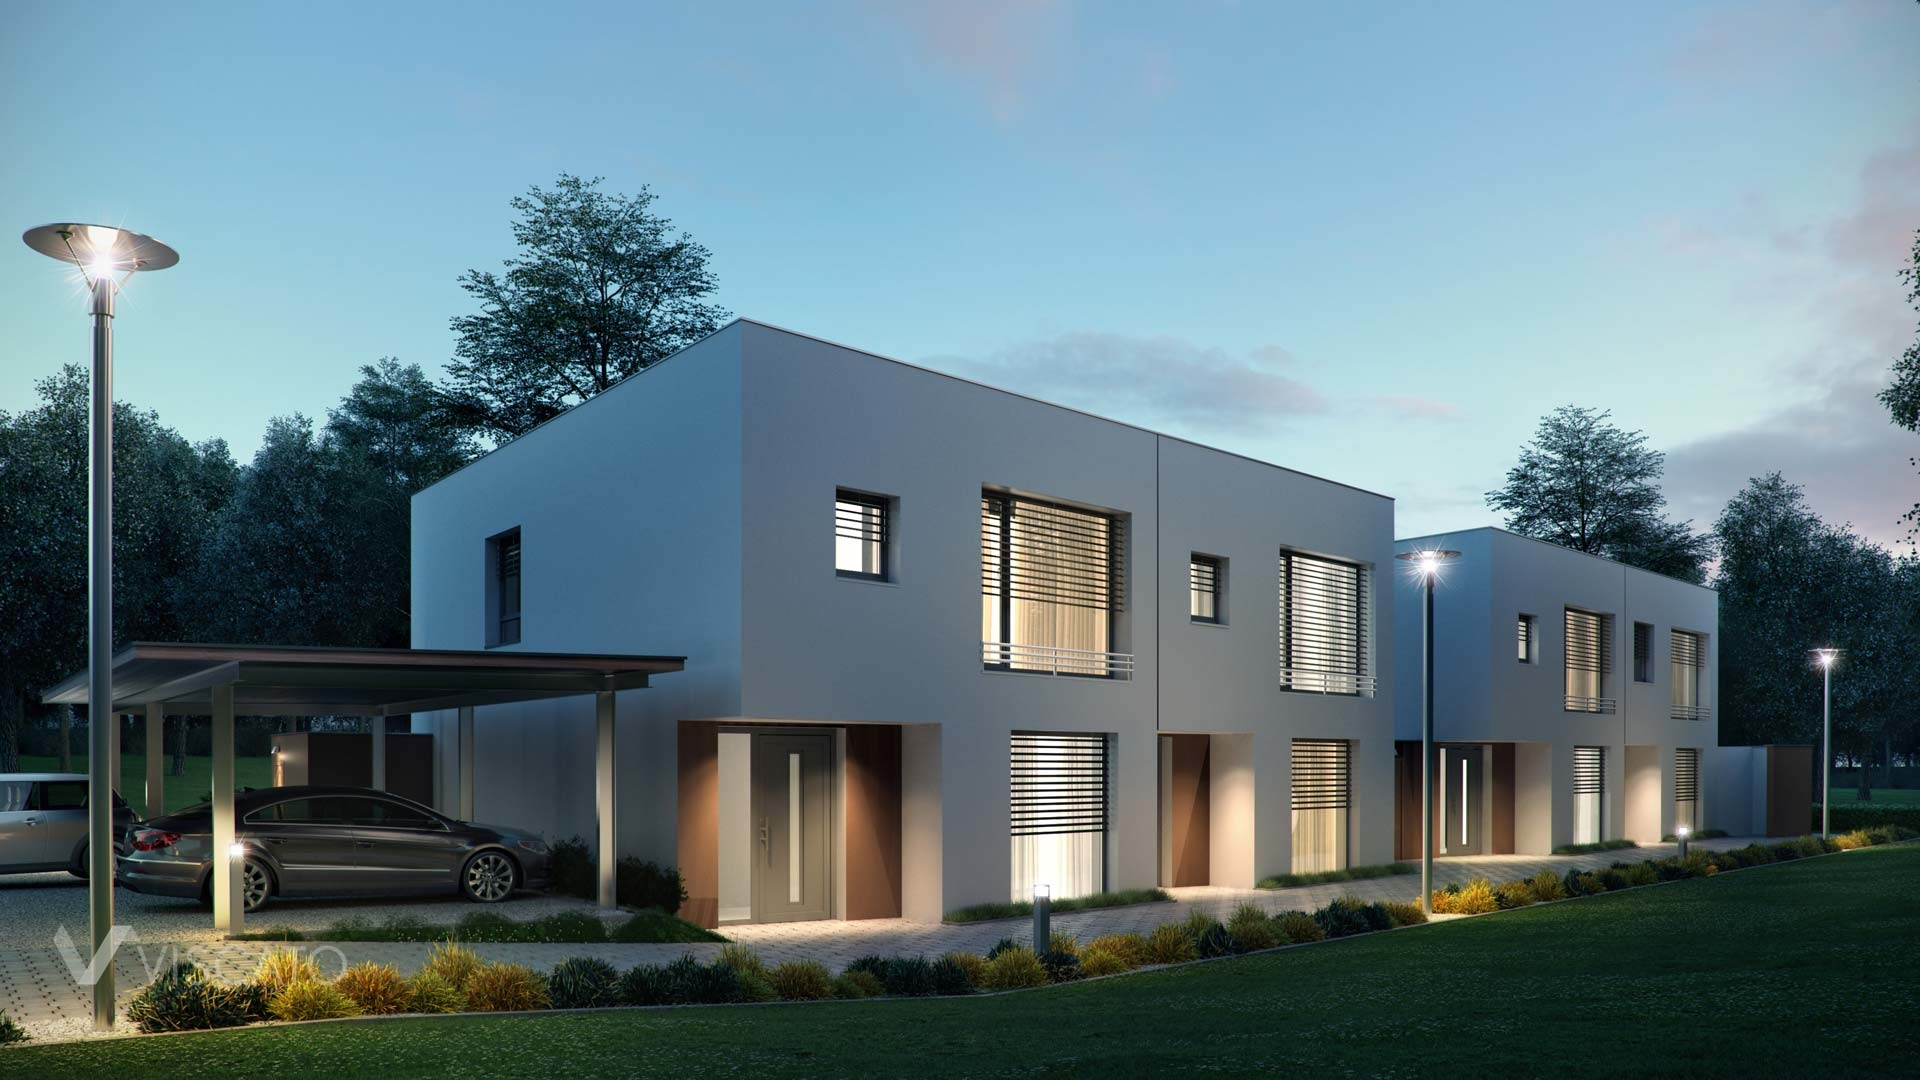 3e exterior visualization of a multi family house in Austria- night view